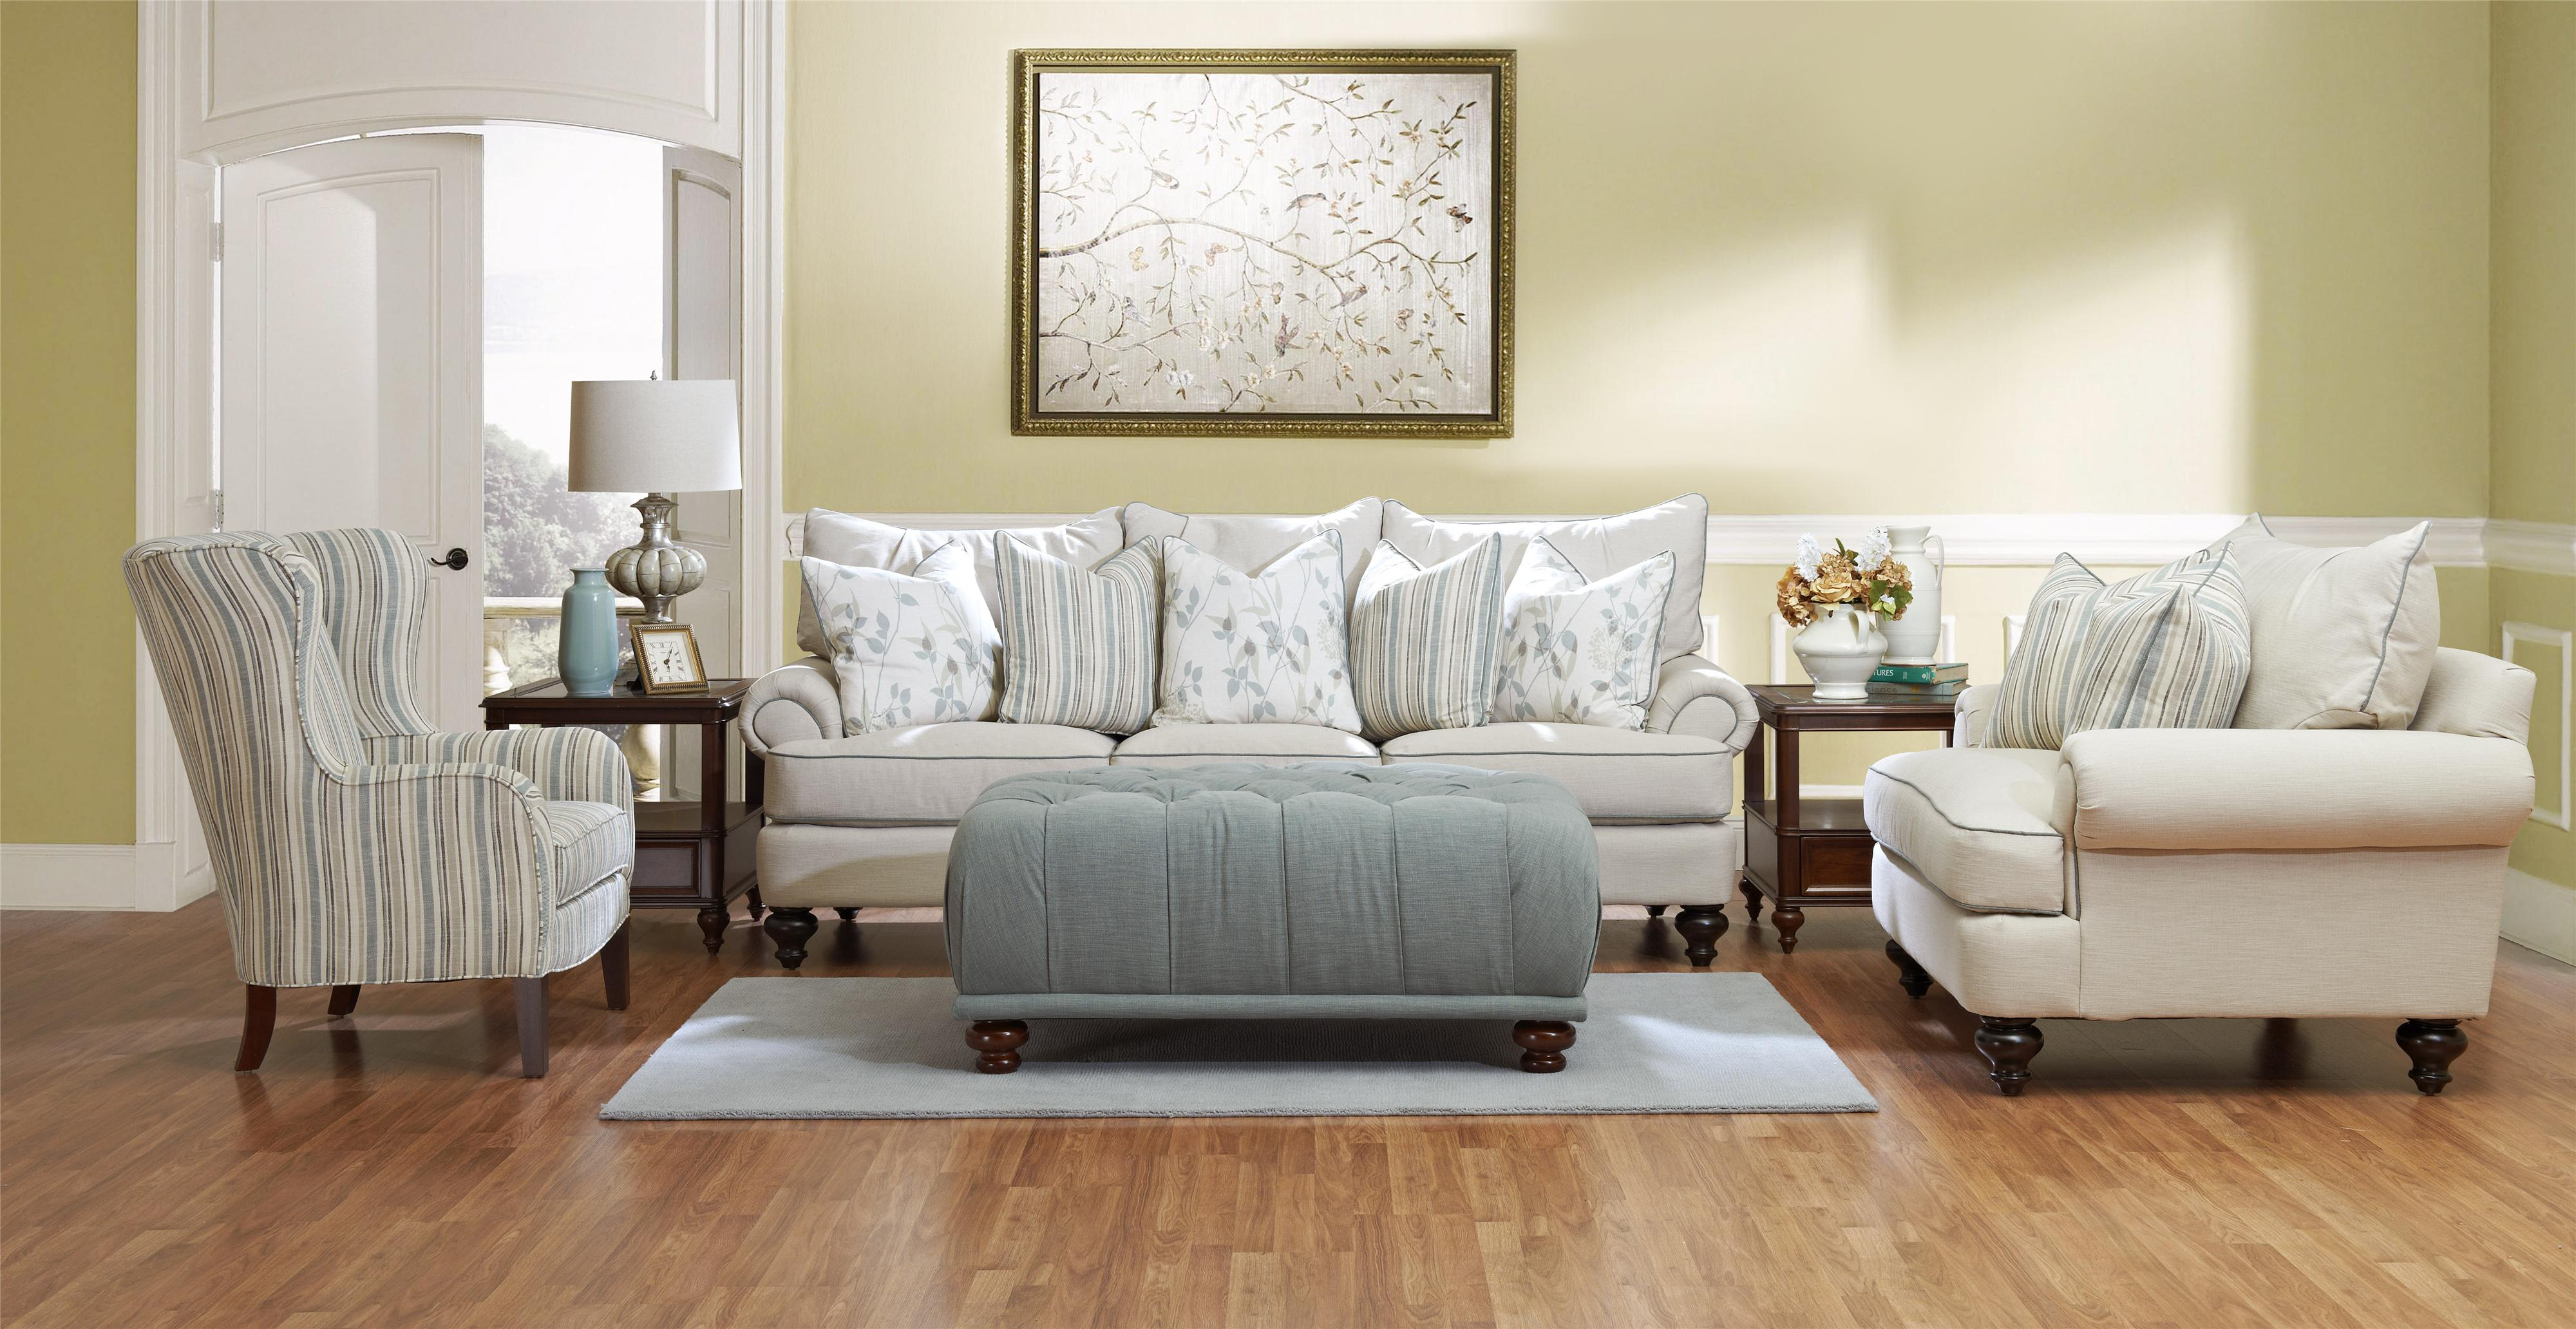 100 down furniture cushions how to make a slipcover for you